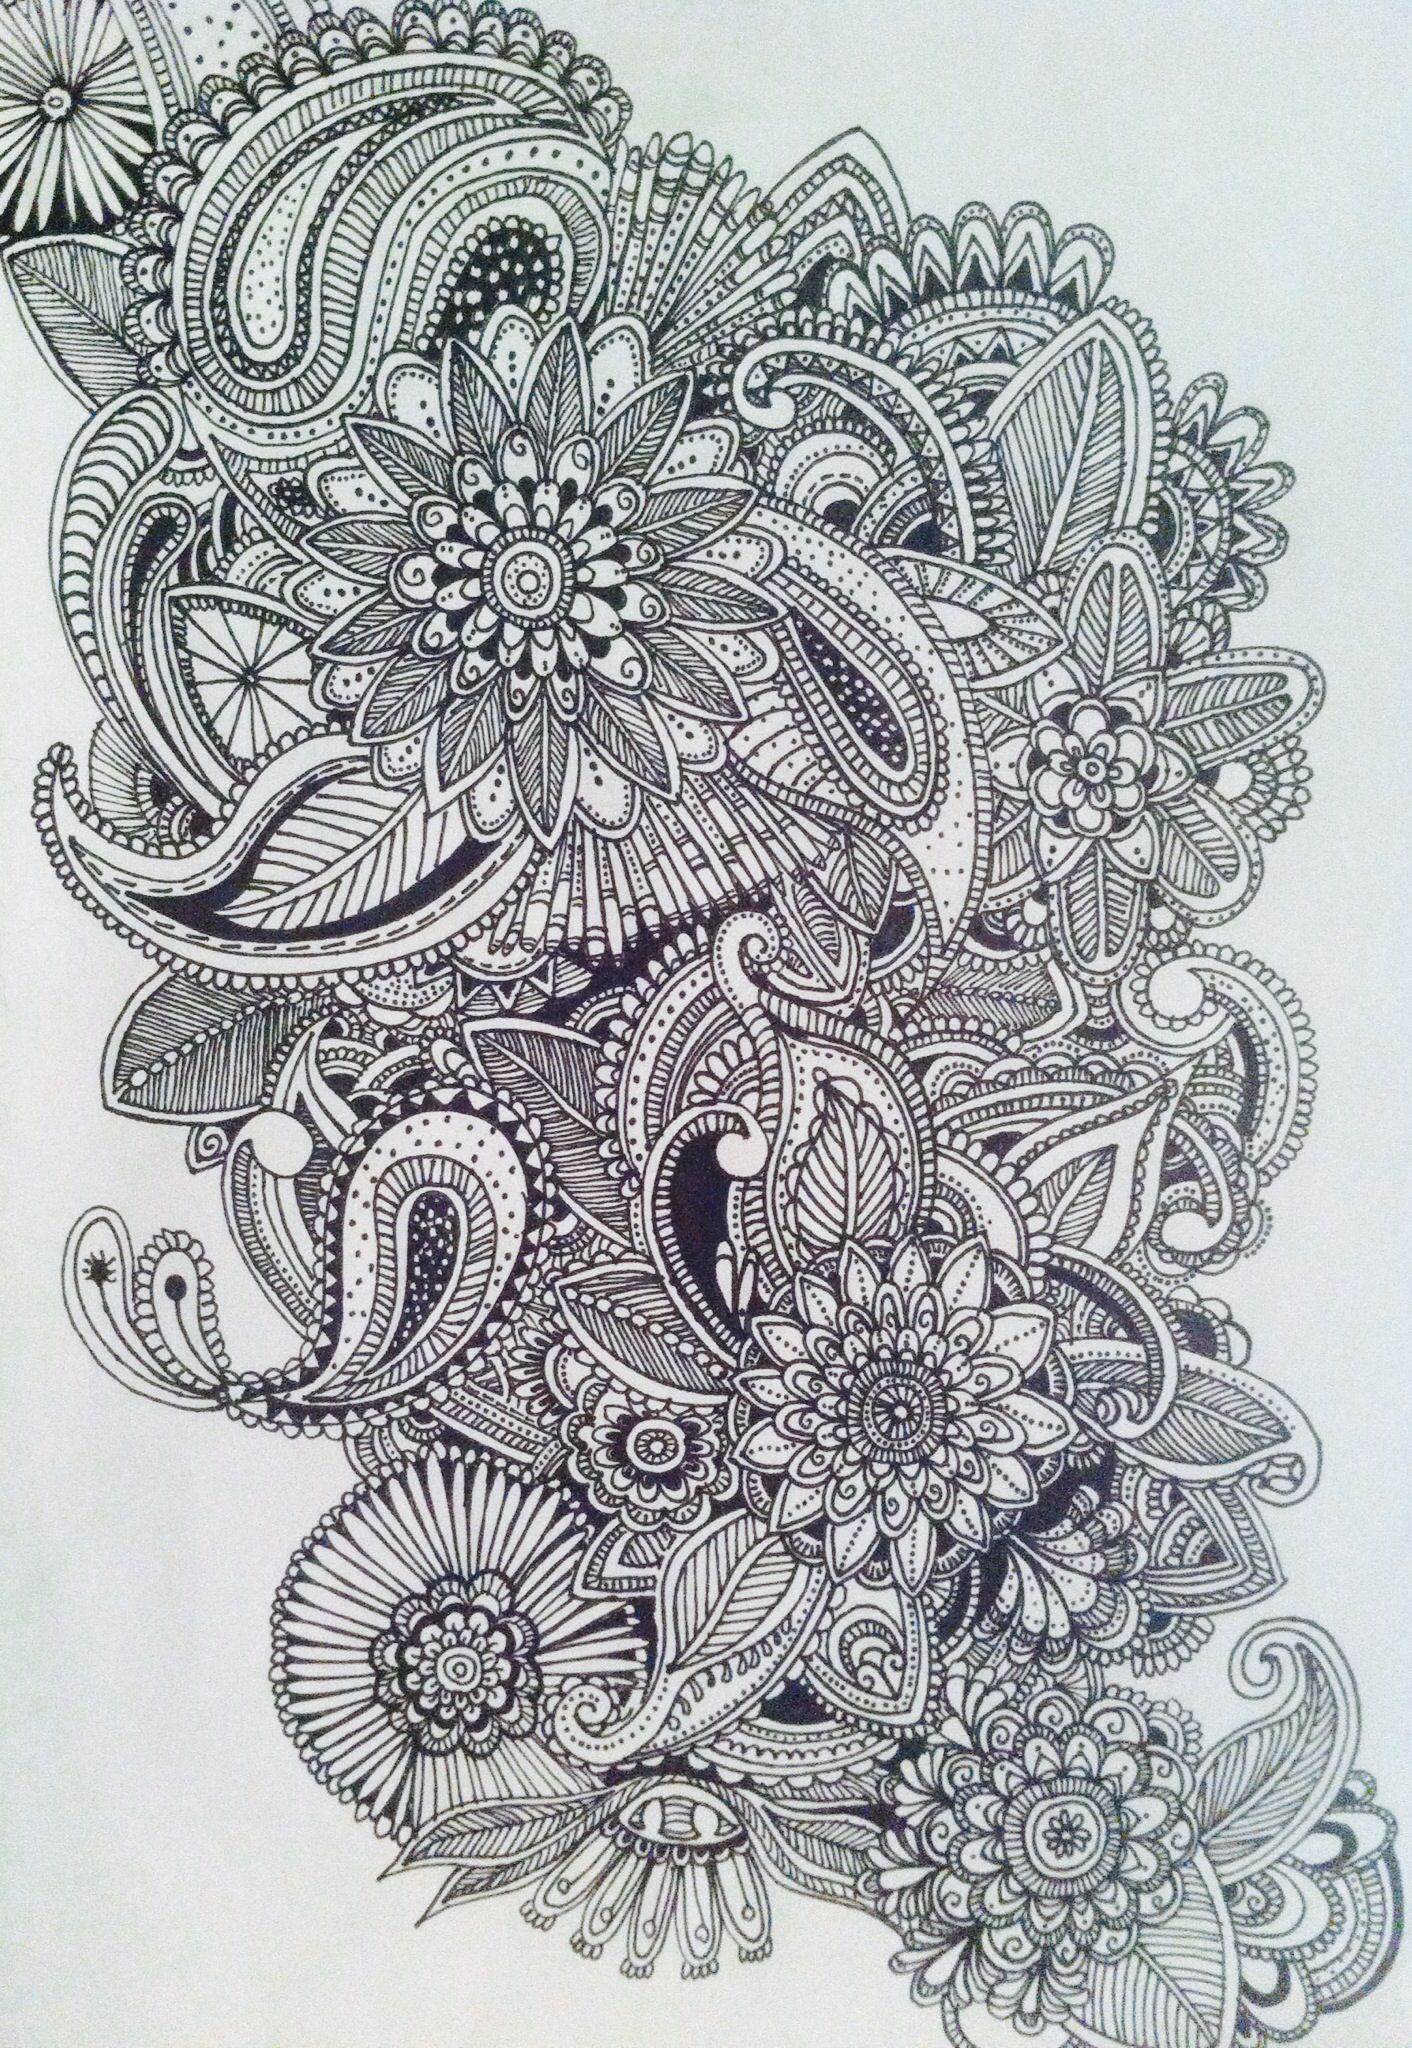 #doodles #pattern #drawing | Doodles | Pinterest